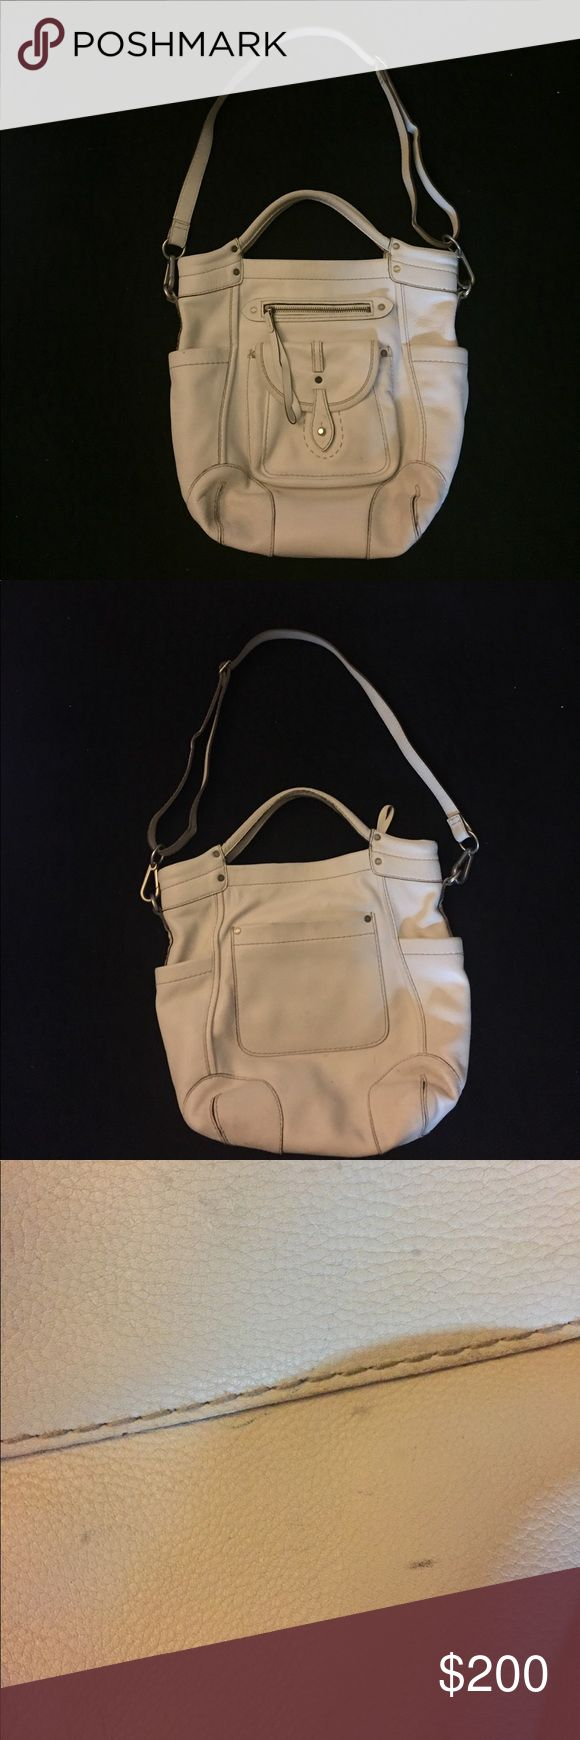 "Abercrombie and Fitch Ruehl Handbag Off white leather Abercrombie and Fitch Ruehl Handbag. I absolutely hate to give this bag up but I do not use it due to having way too may handbags. There are a few marks on the back of the bag that are shown. However they cannot be seen while wearing. My loss is your gain. This bag has thick heavy leather that will last a long long time. White is in ladies so snatch it up before someone else does. Adjustable removable strap.  Strap drop: 20.5"" Ruehl No…"